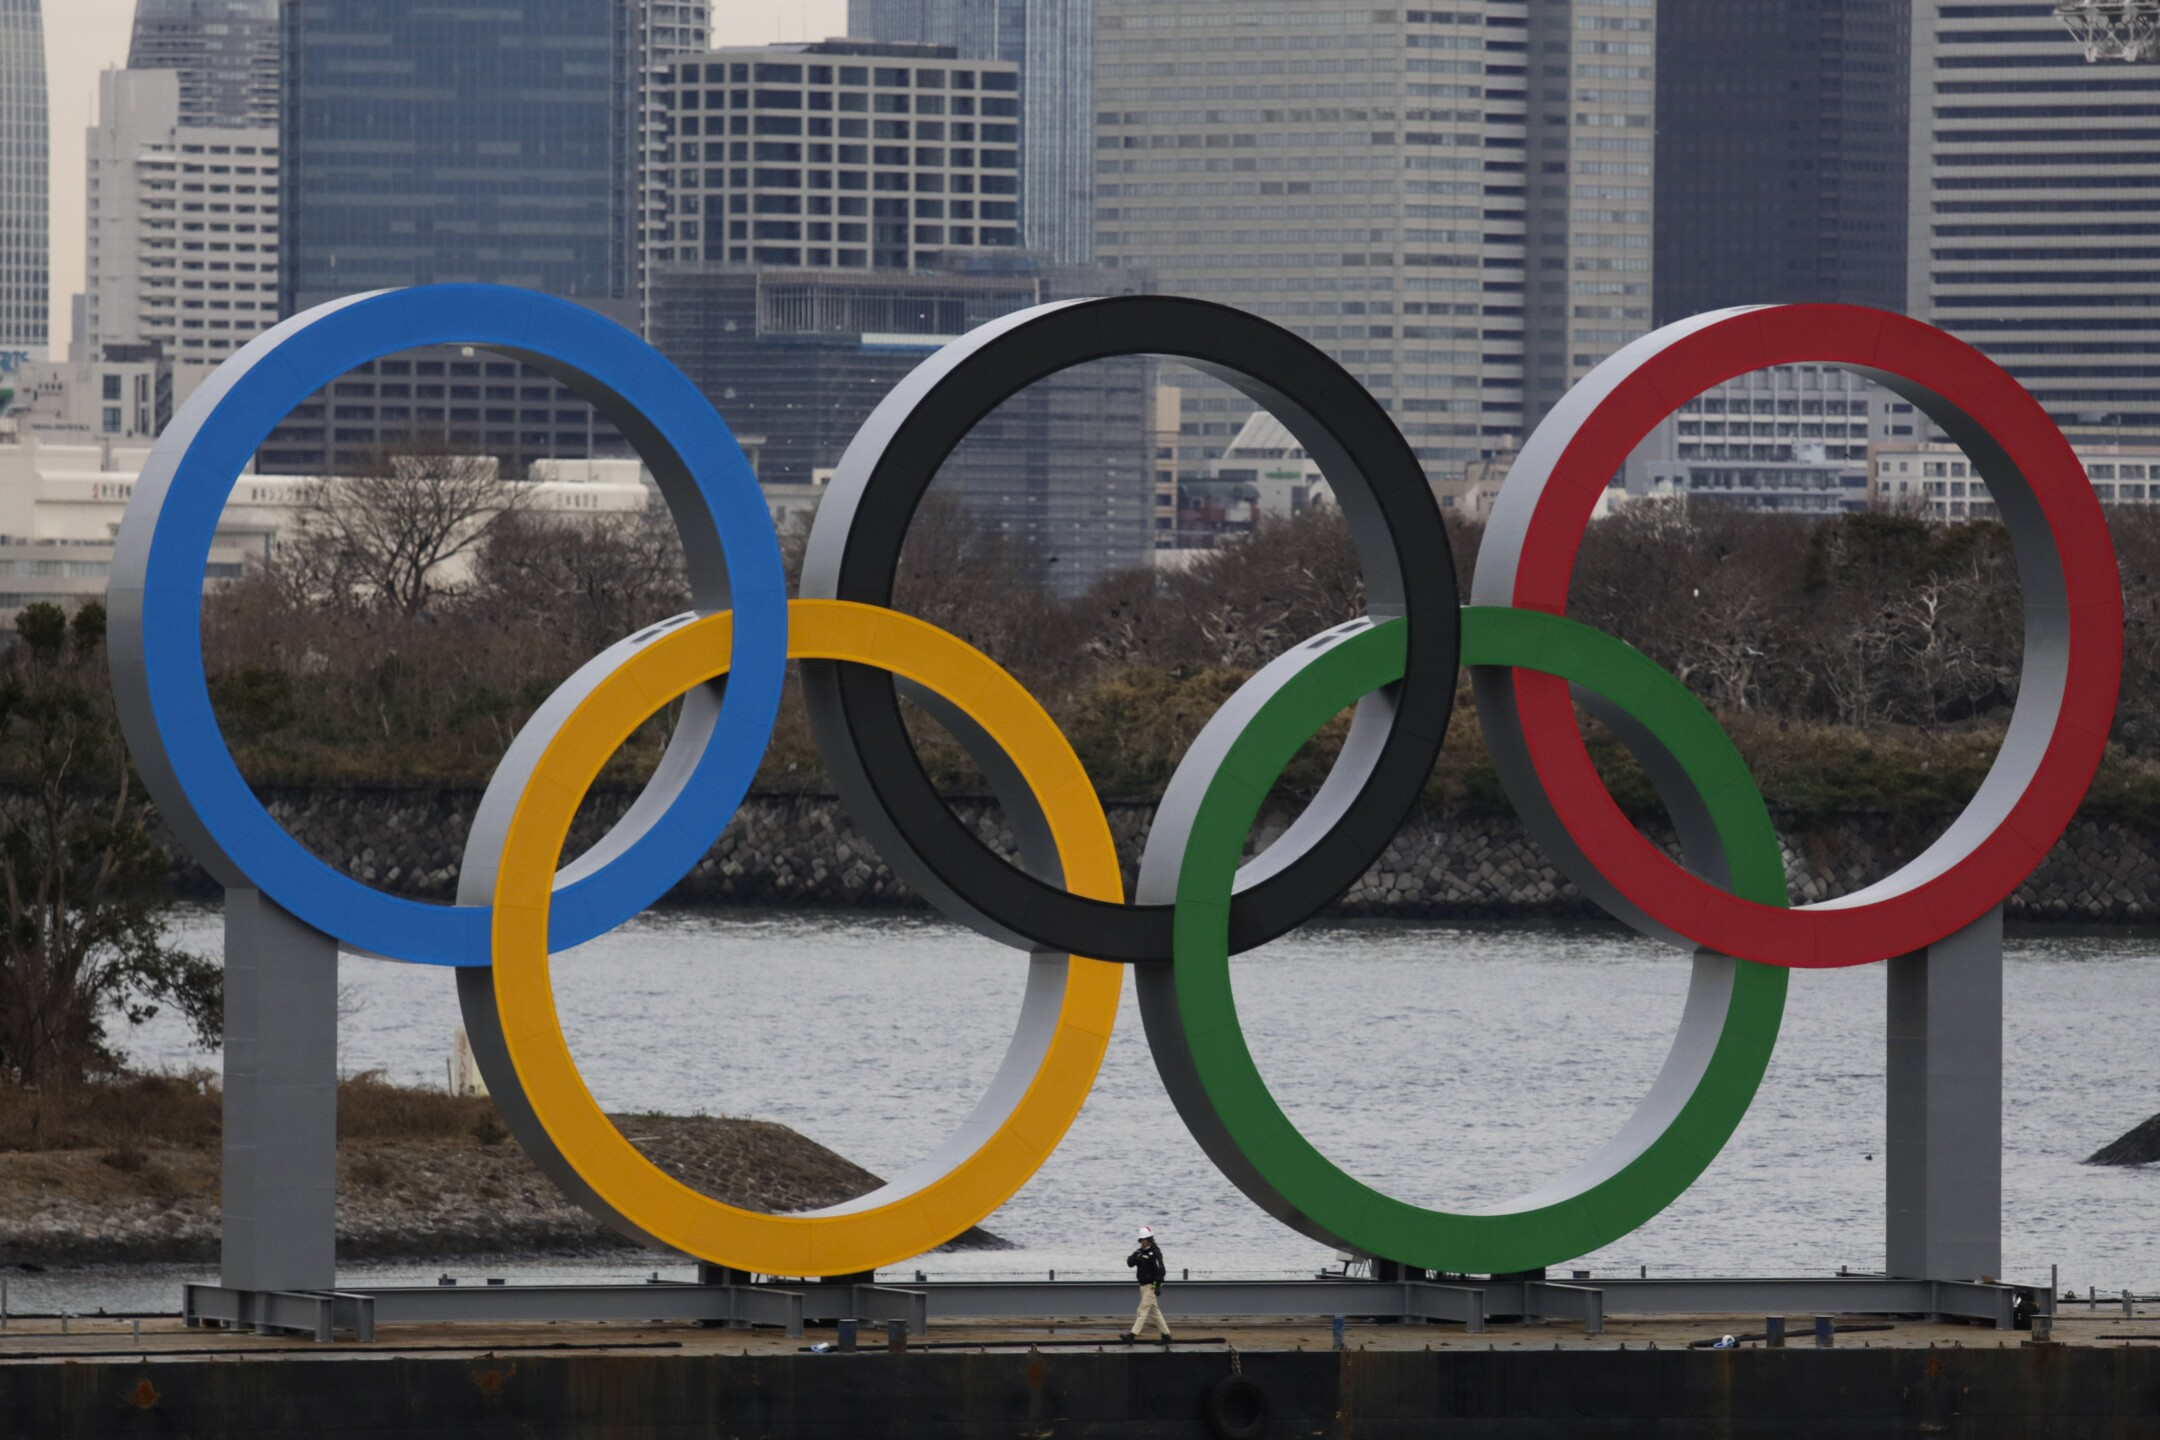 Photos: Olympic rings arrive in host city on barge into Tokyo Bay